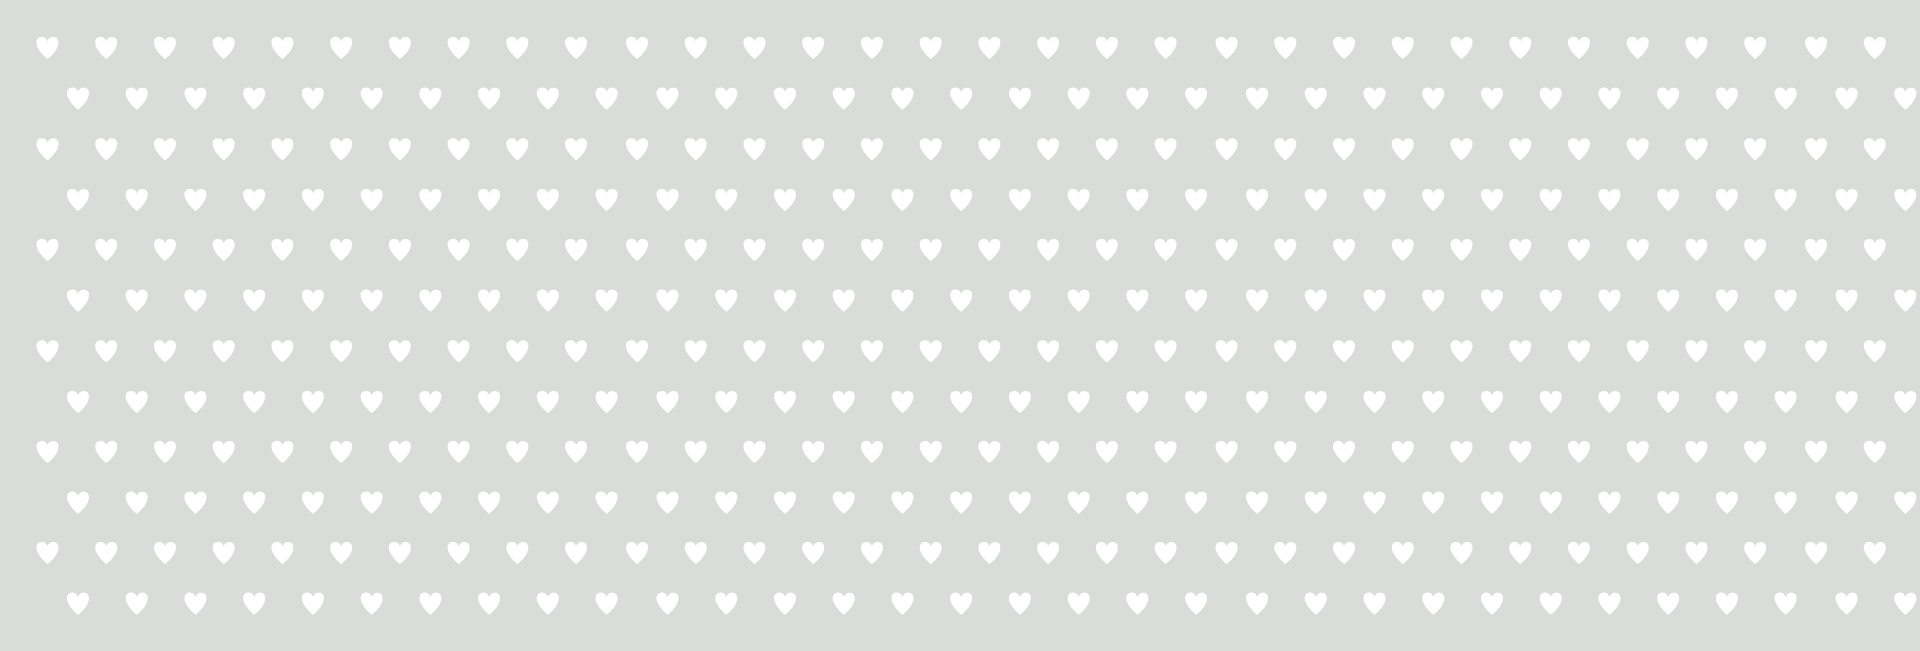 Fall In Love Leaf Wallpaper Grey Heart Pattern Background Heart Poster Banner